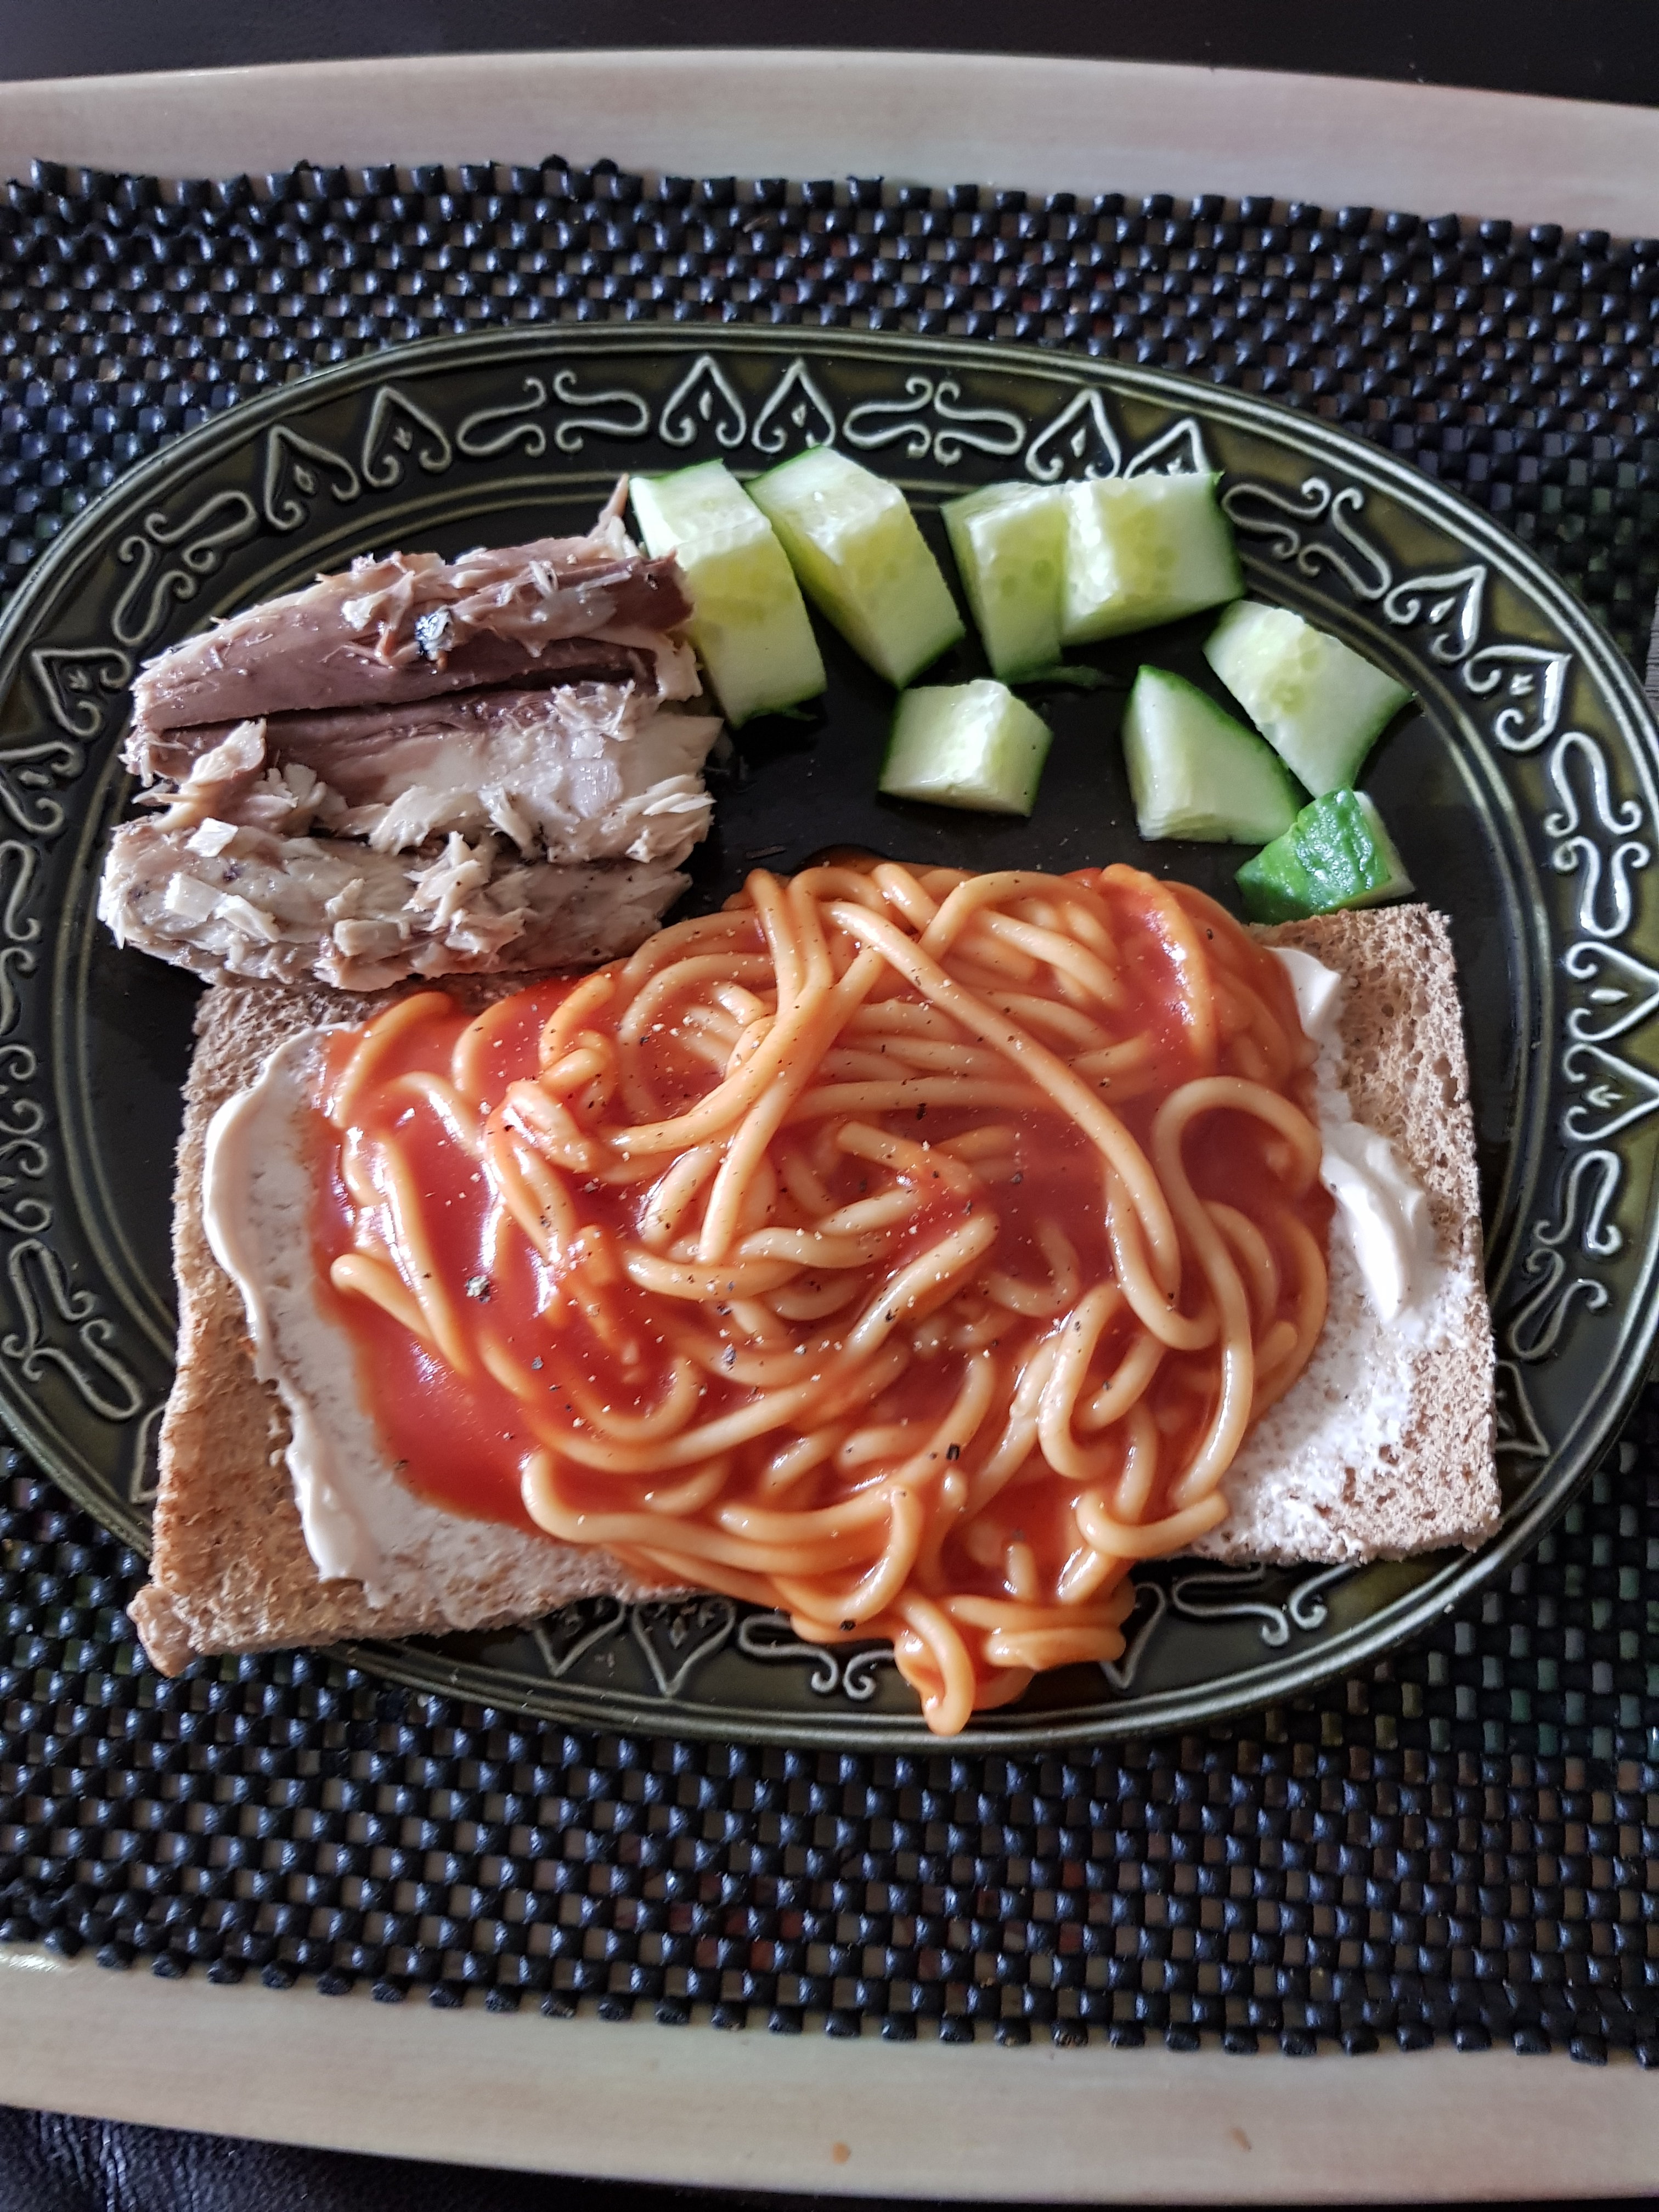 Lunch of spaghetti on wholemeal toast, mackerel and cucumber